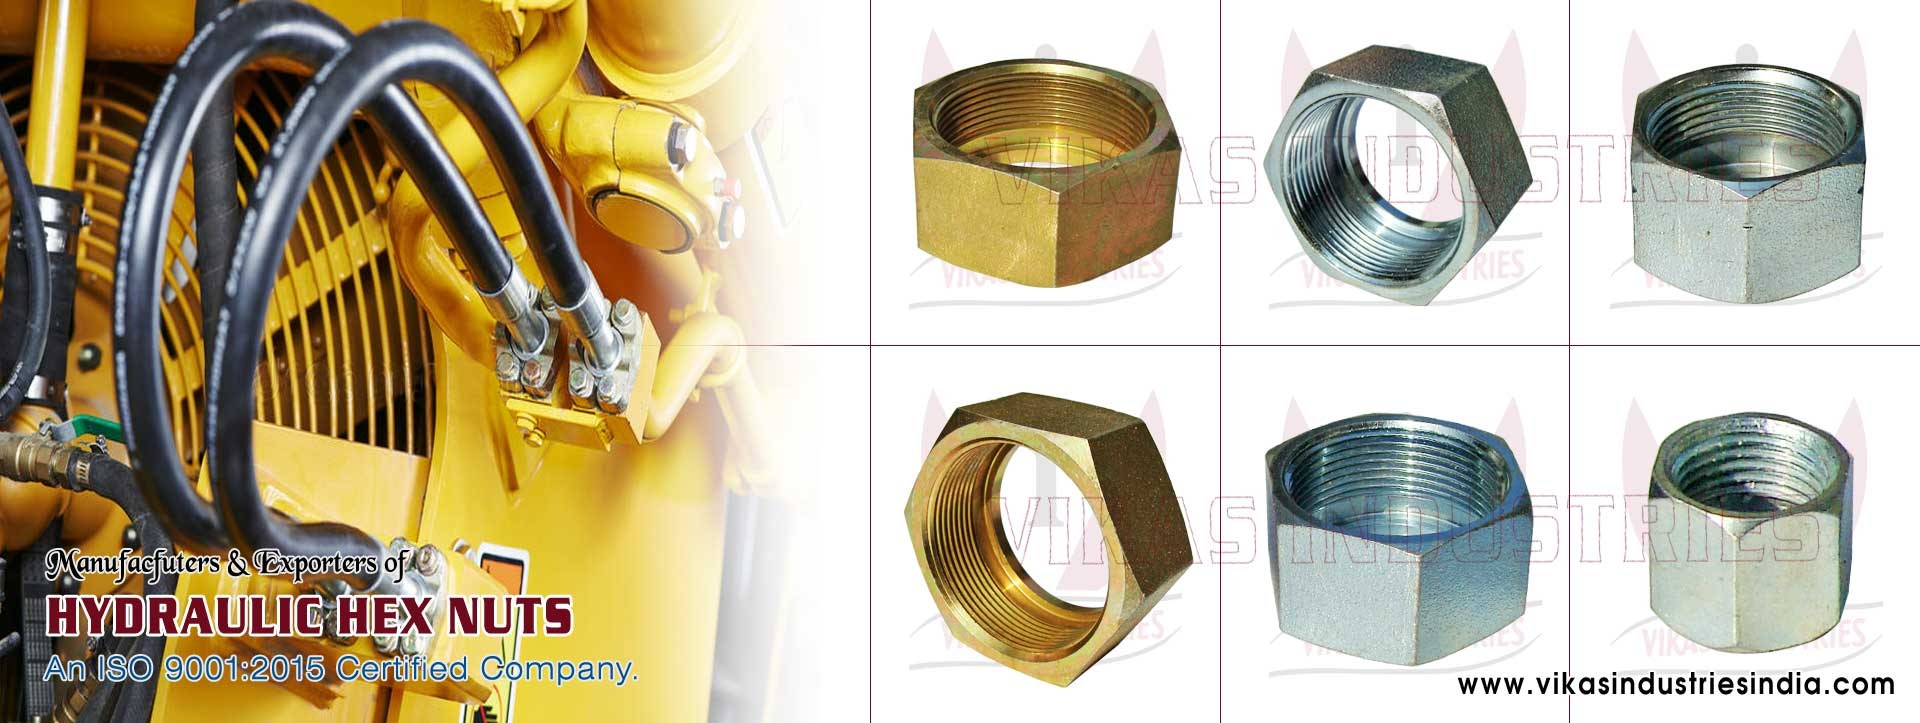 hydraulic nuts hydraulic hex nuts manufacturers exporters suppliers in India Punjab Ludhiana